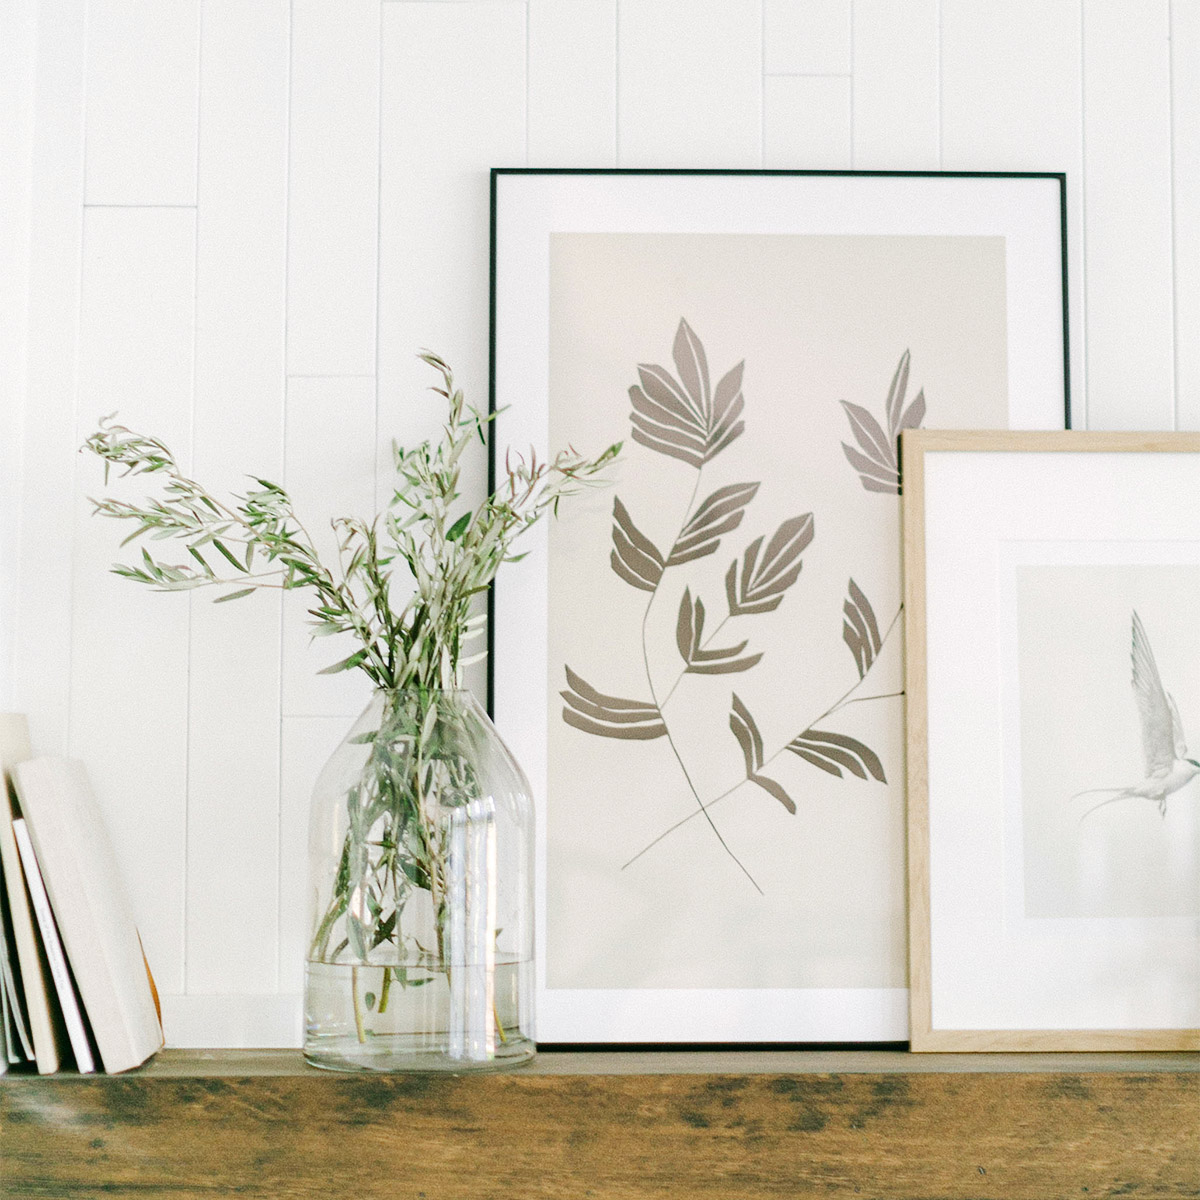 Two frames layered on mantle next to vase of foliage